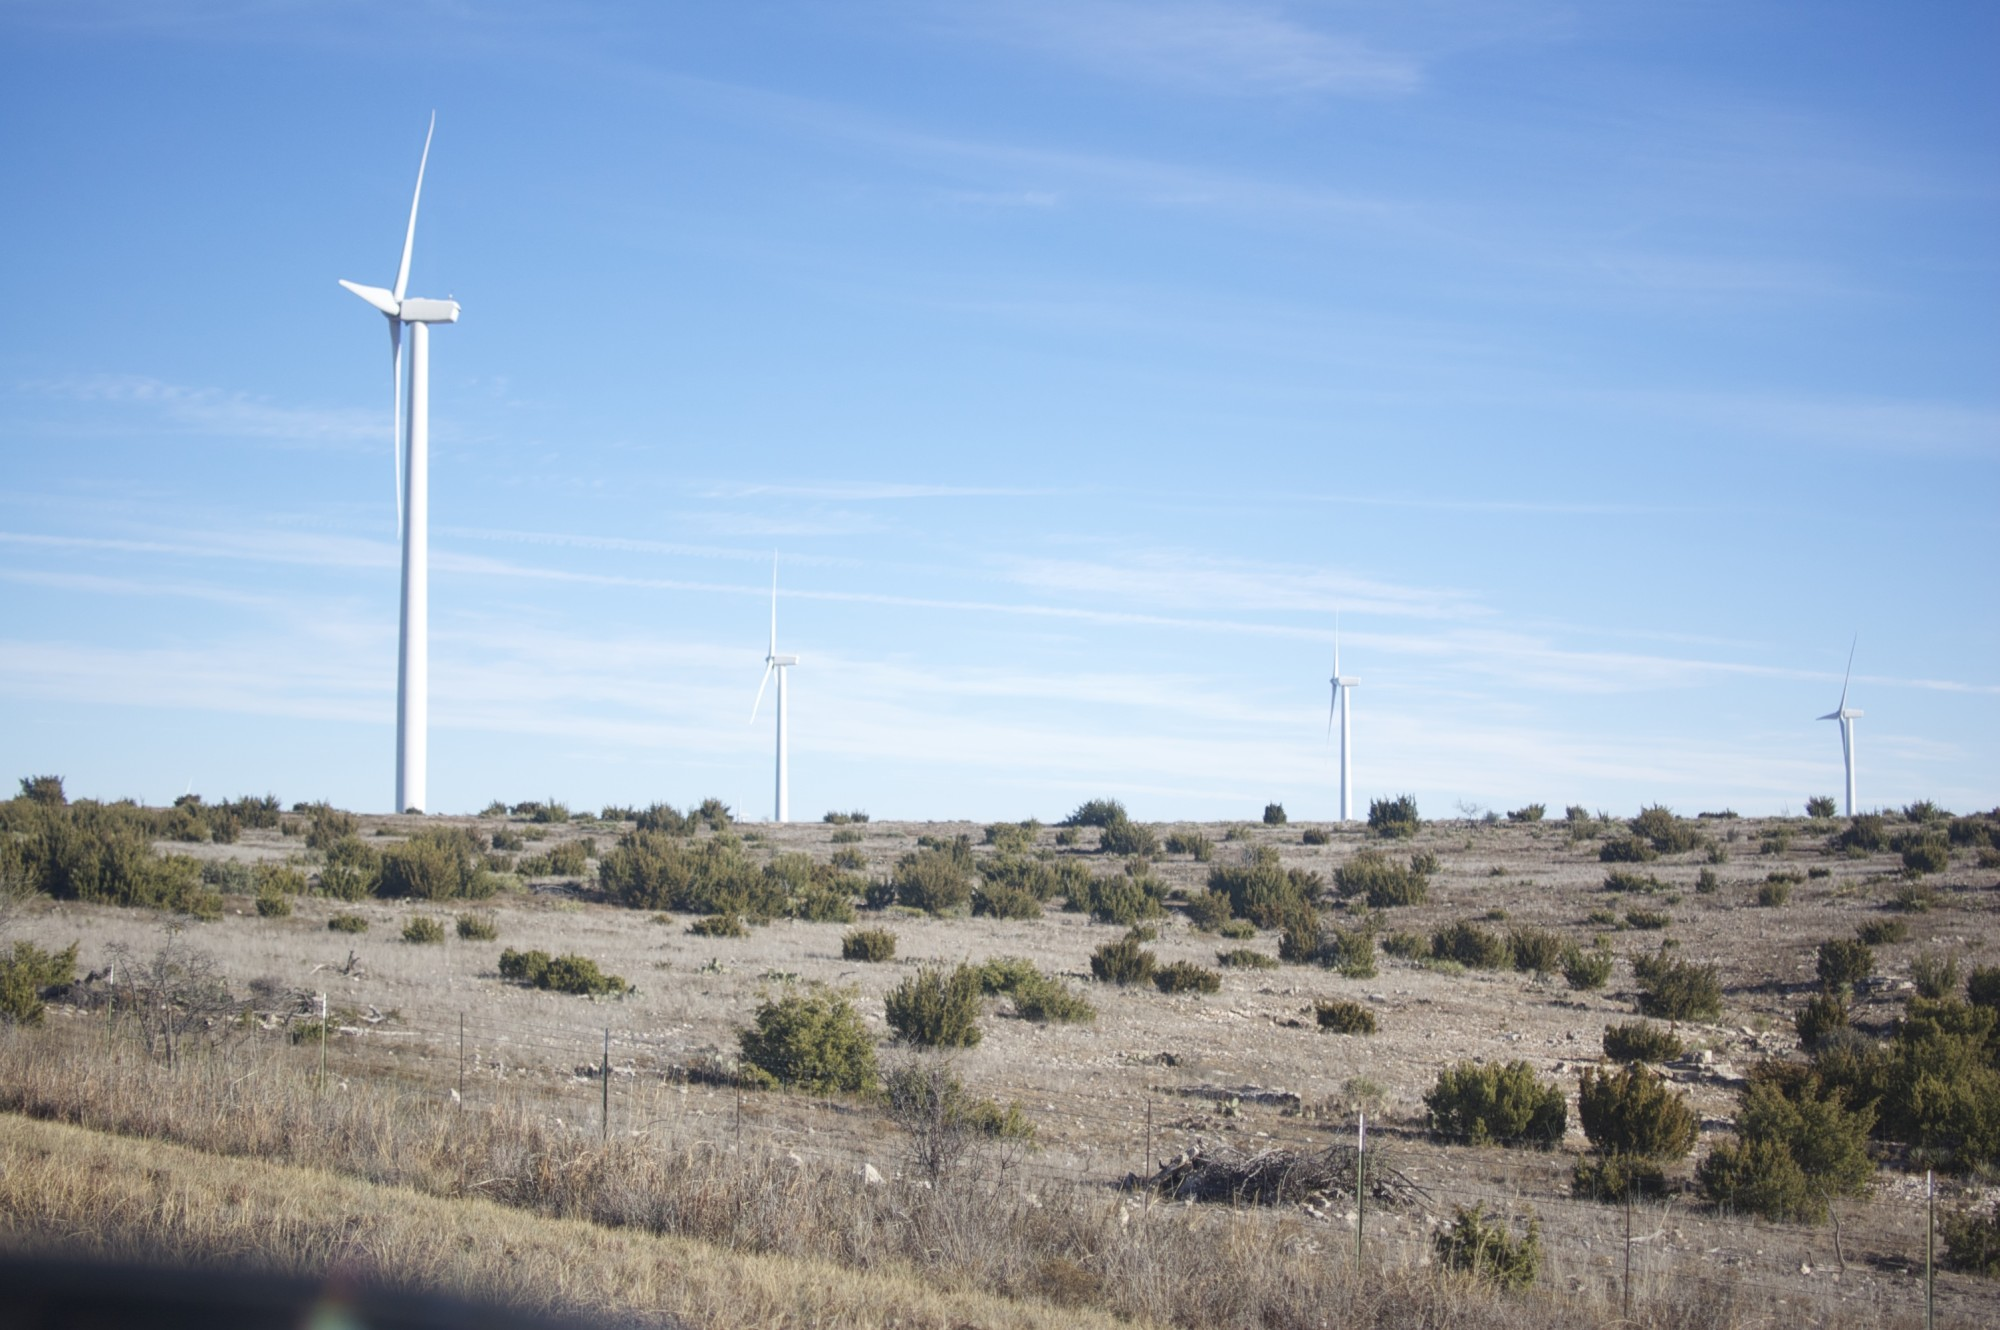 Windmills in Sweetwater, Texas